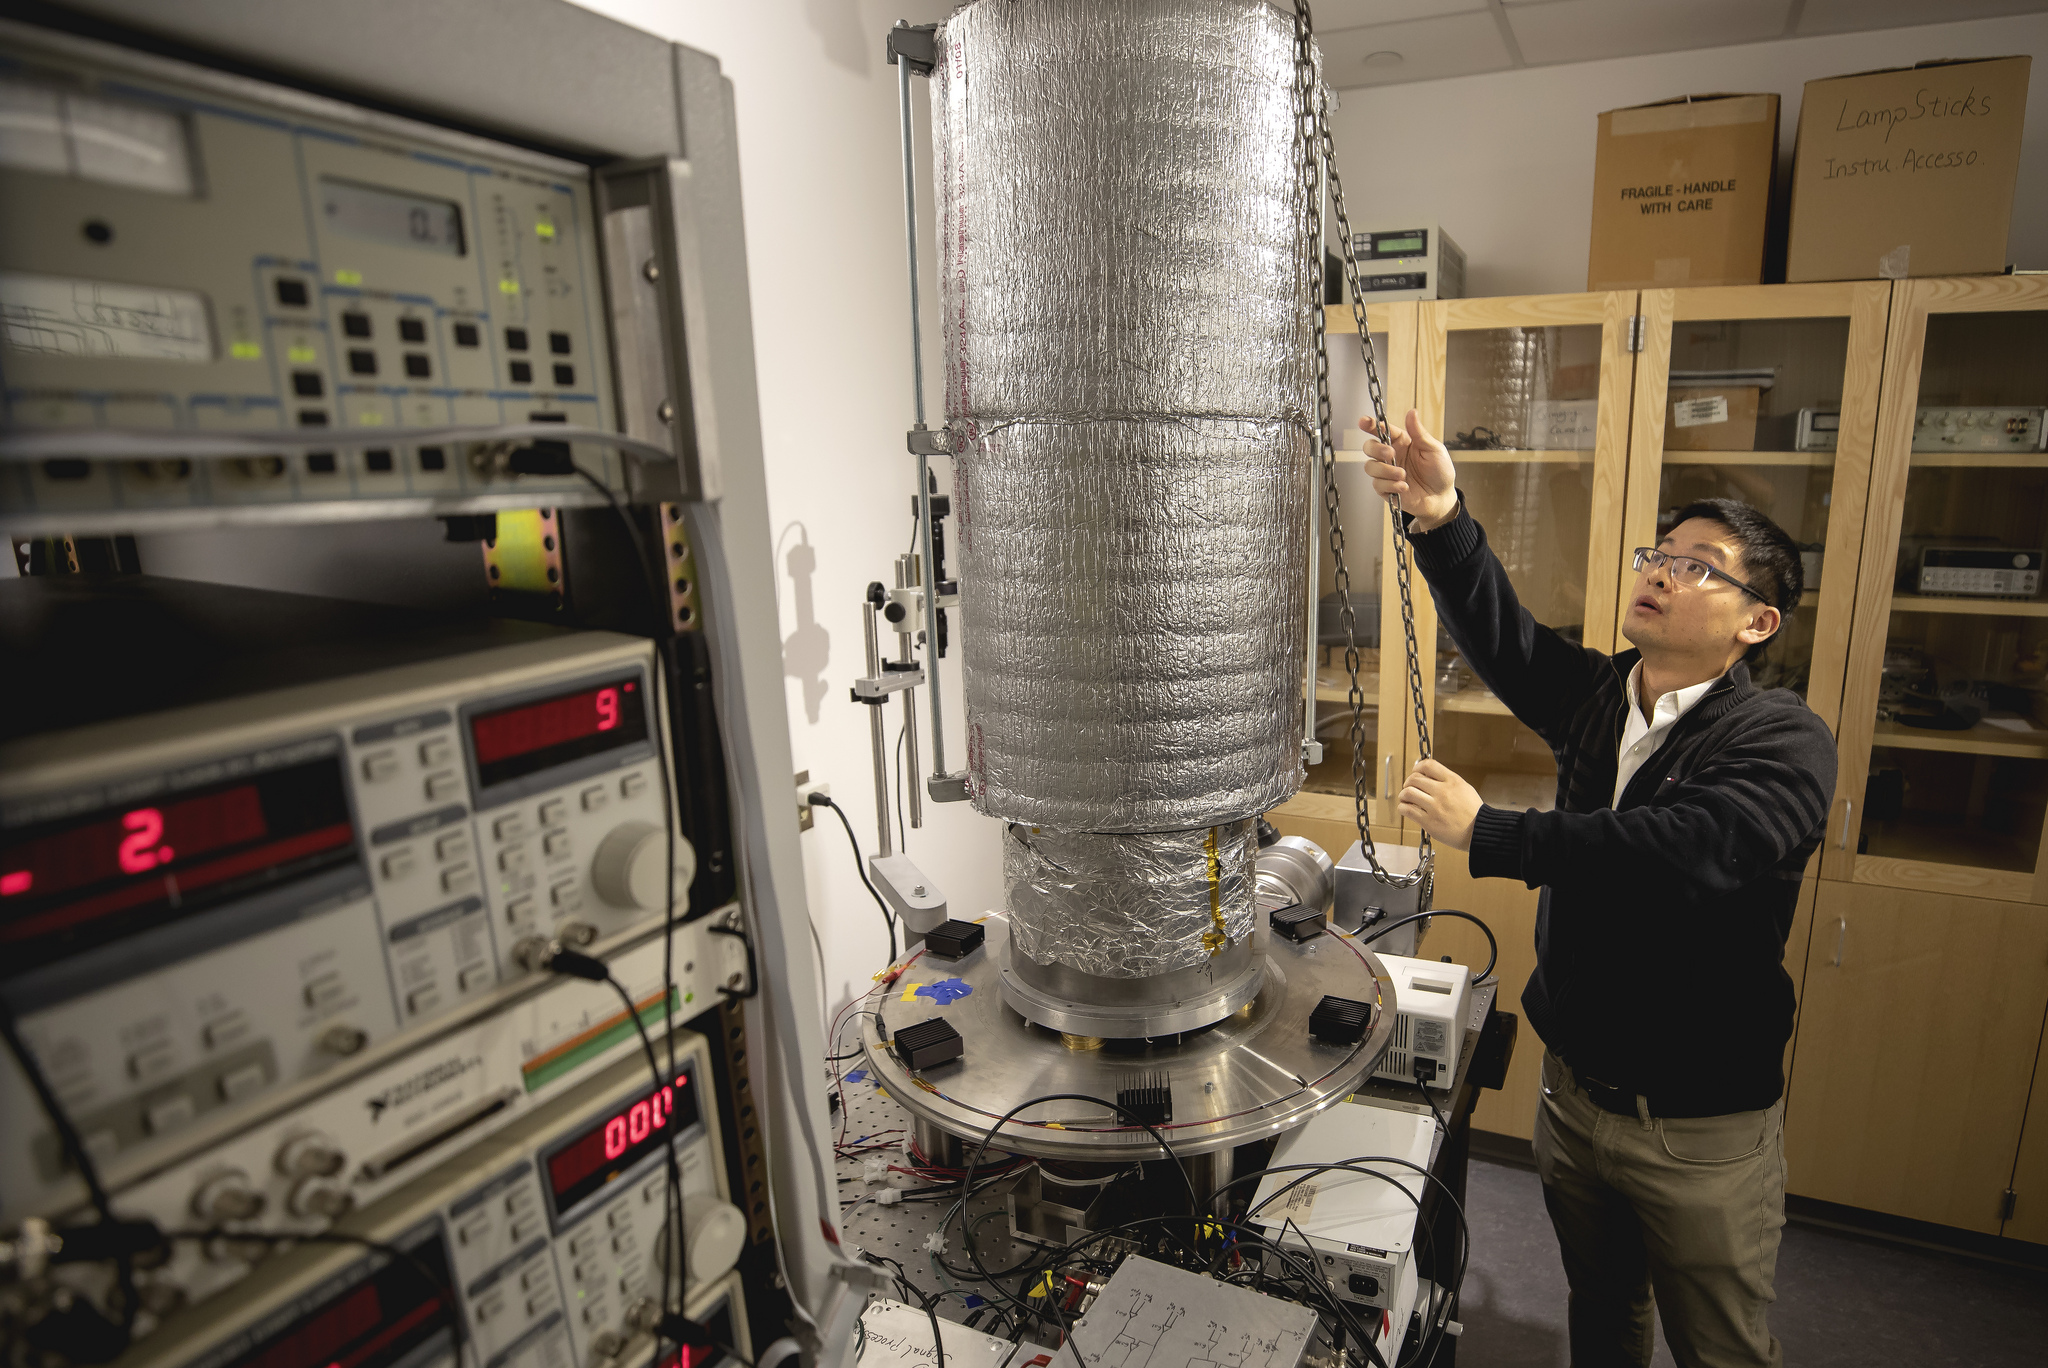 Linxiao Zhu shows the experimental platform that housed the calorimeter and photodiode. This system can damp vibrations from the room and building, steadily holding the two nanoscale objects 55 nanometers (0.000055 millimeters) apart. Image credit: Joseph Xu